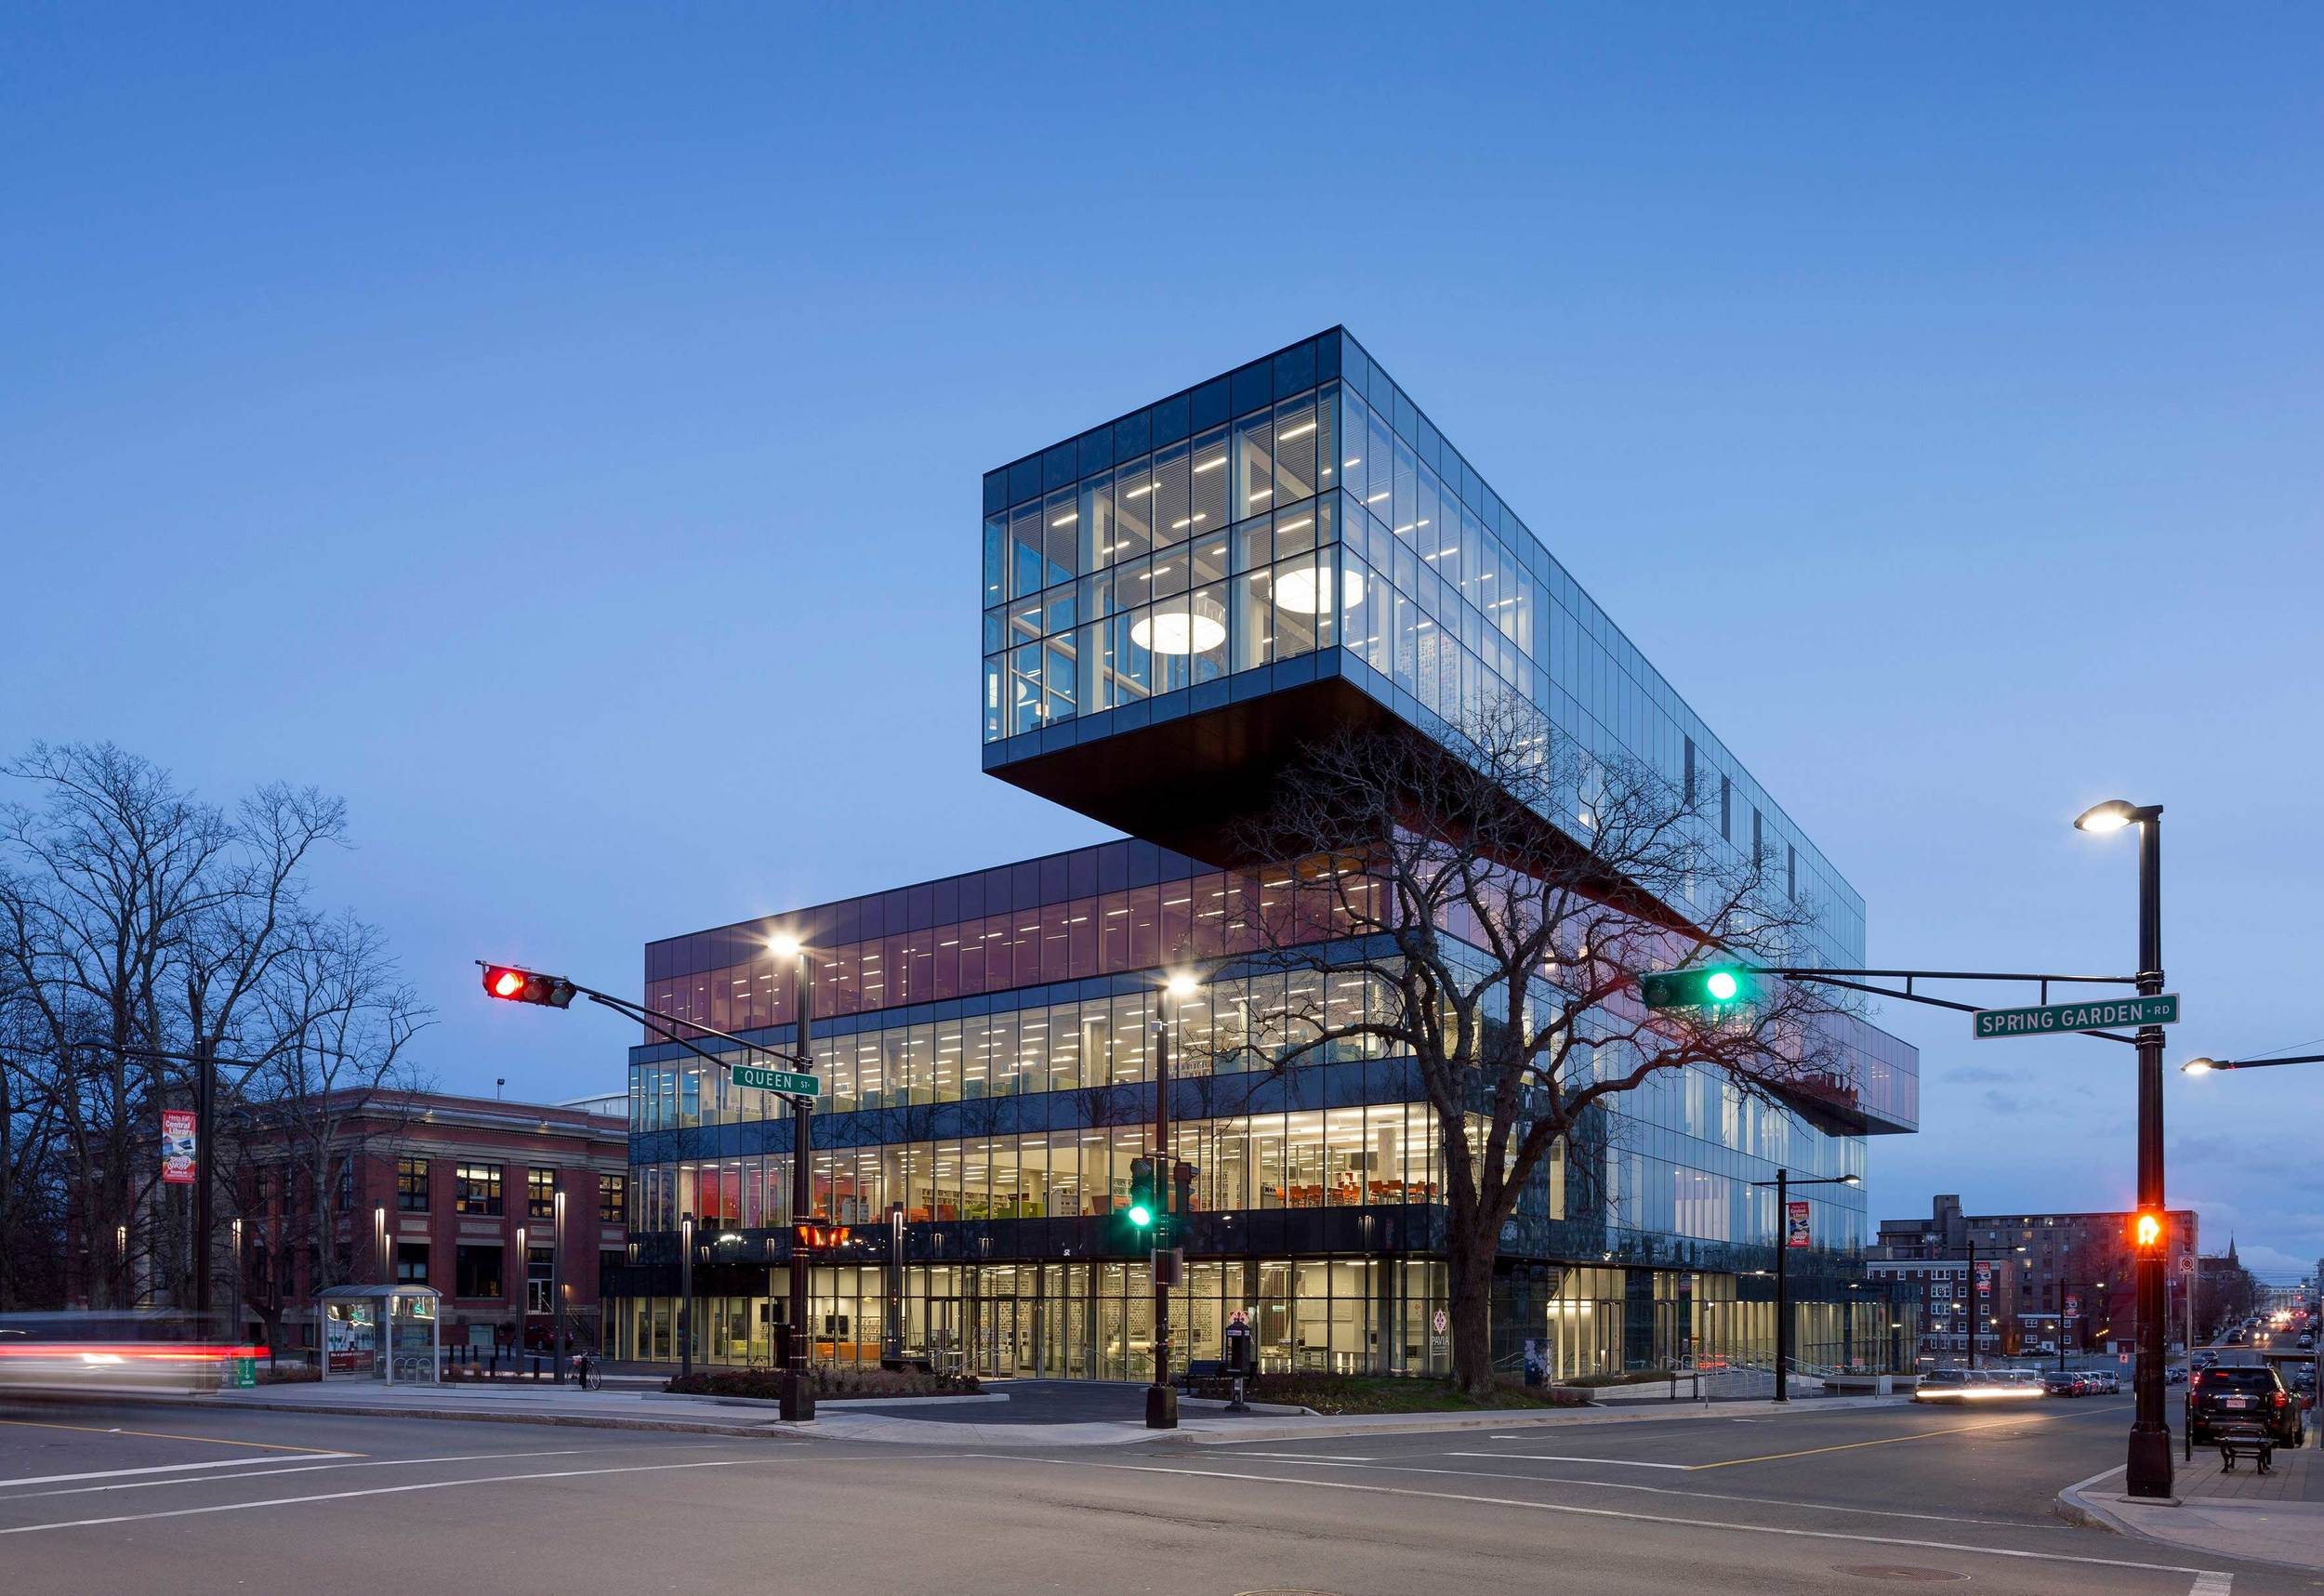 CLIENT/OWNER: City of Halifax CONSTRUCTION MANAGER: EllisDon ARCHITECTS: Fowler Bauld & Mitchell and Schmidt Hammer Lassen LOCATION: Halifax, Nova Scotia